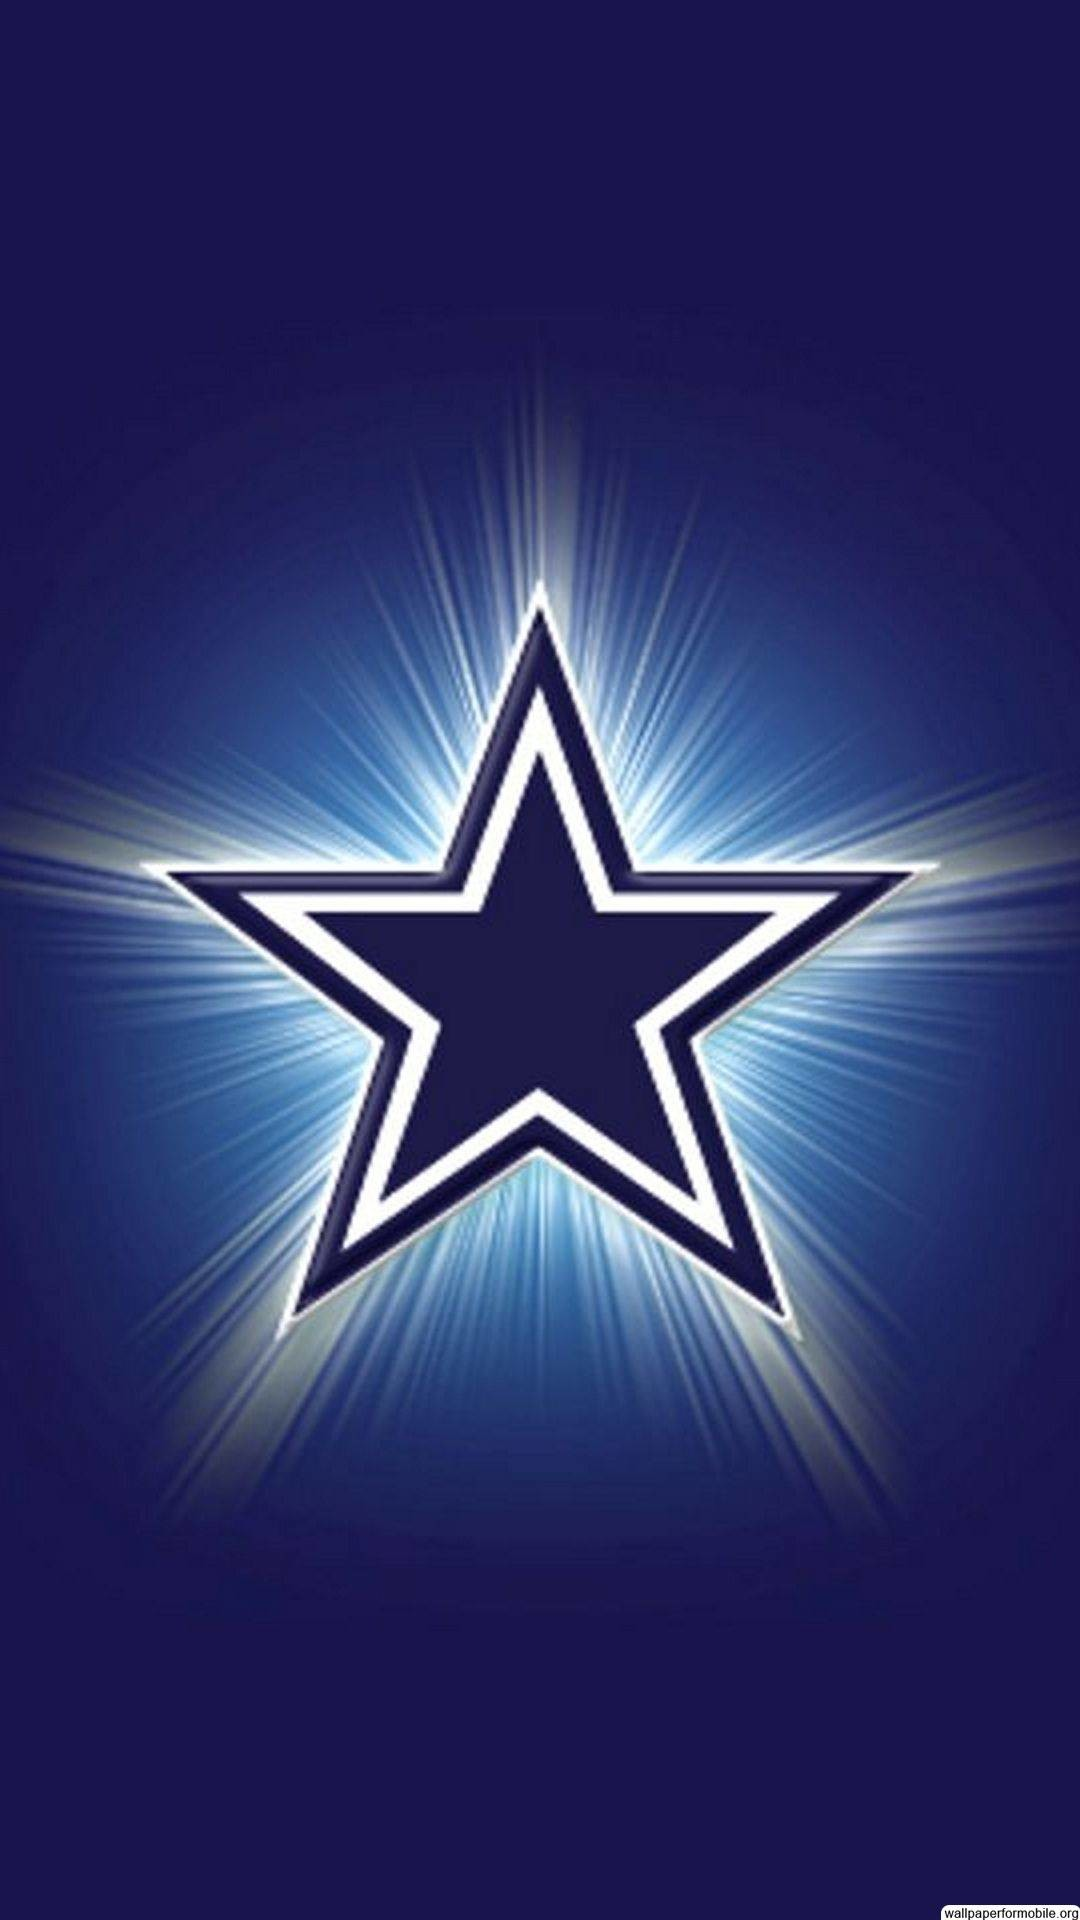 Dallas Cowboys Wallpaper For Iphone | Wallpaper for Mobile